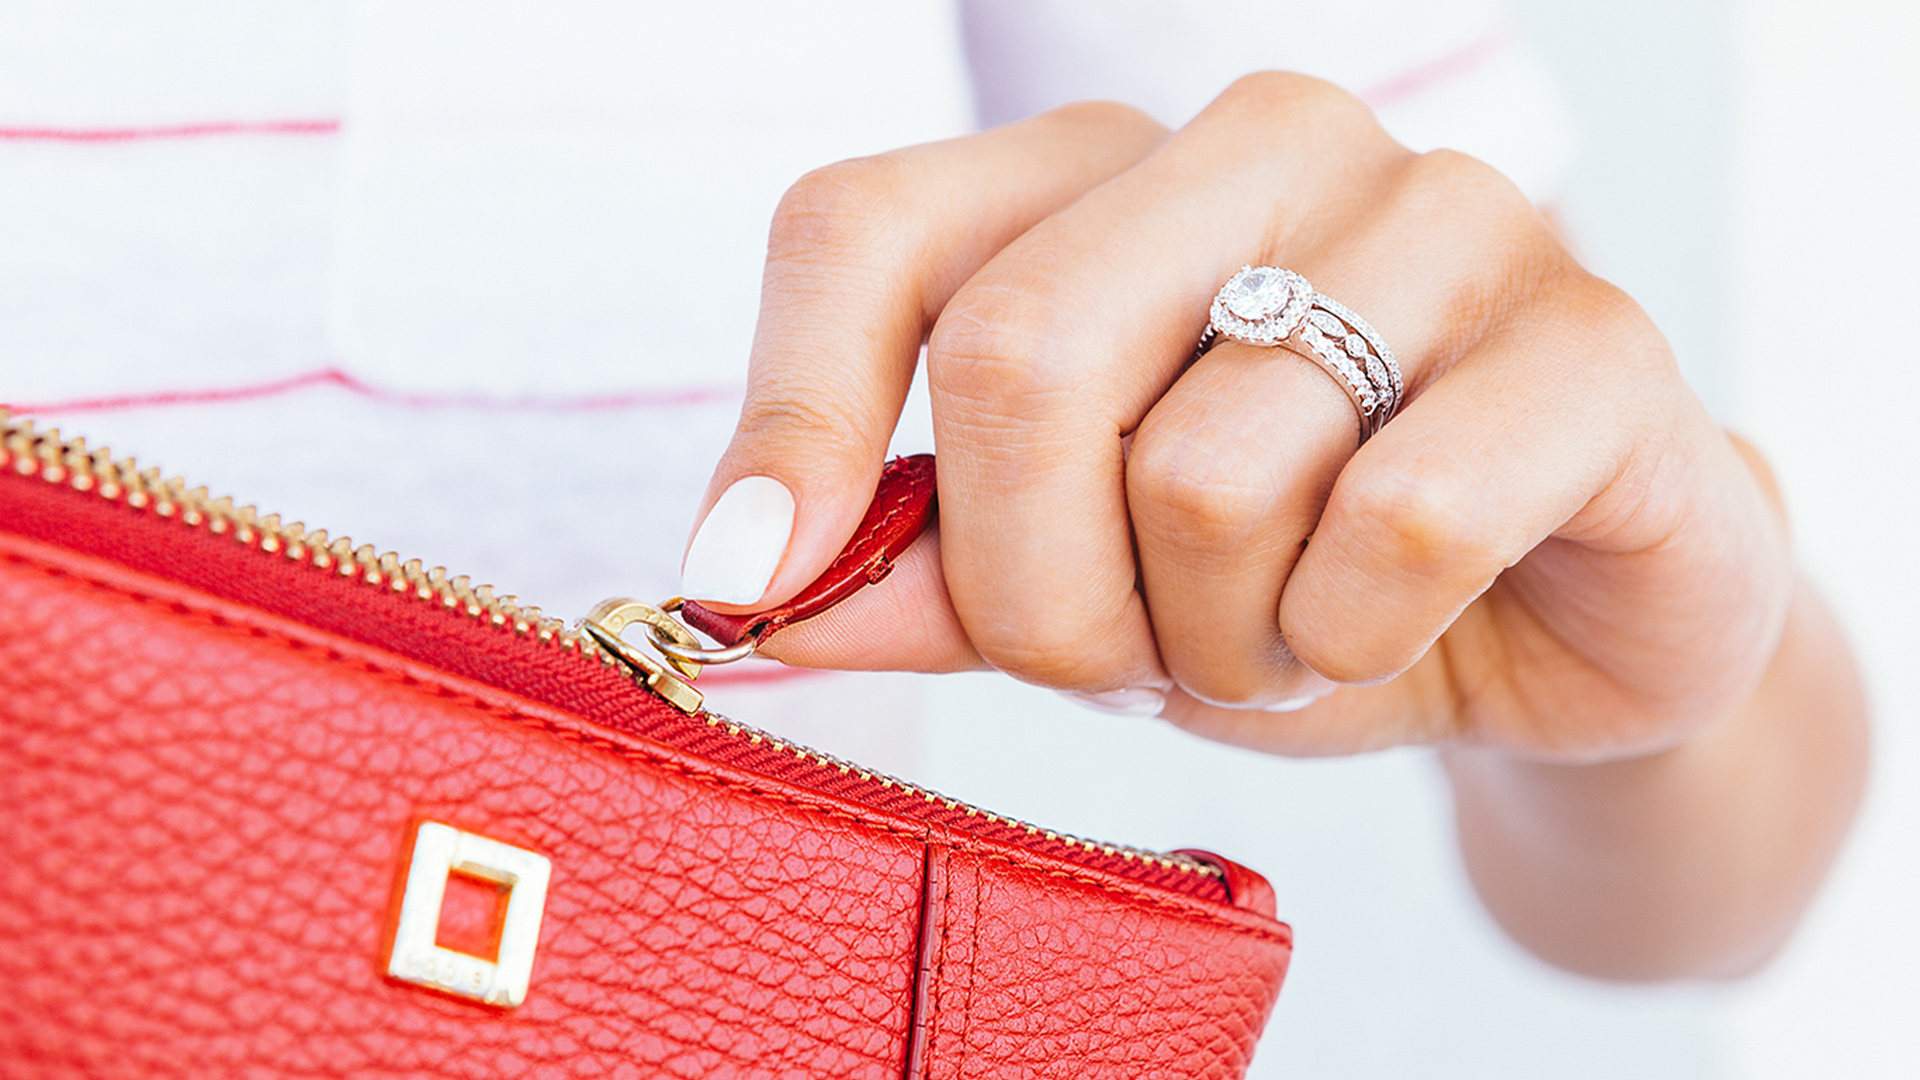 Woman wearing engagement ring and wedding bands